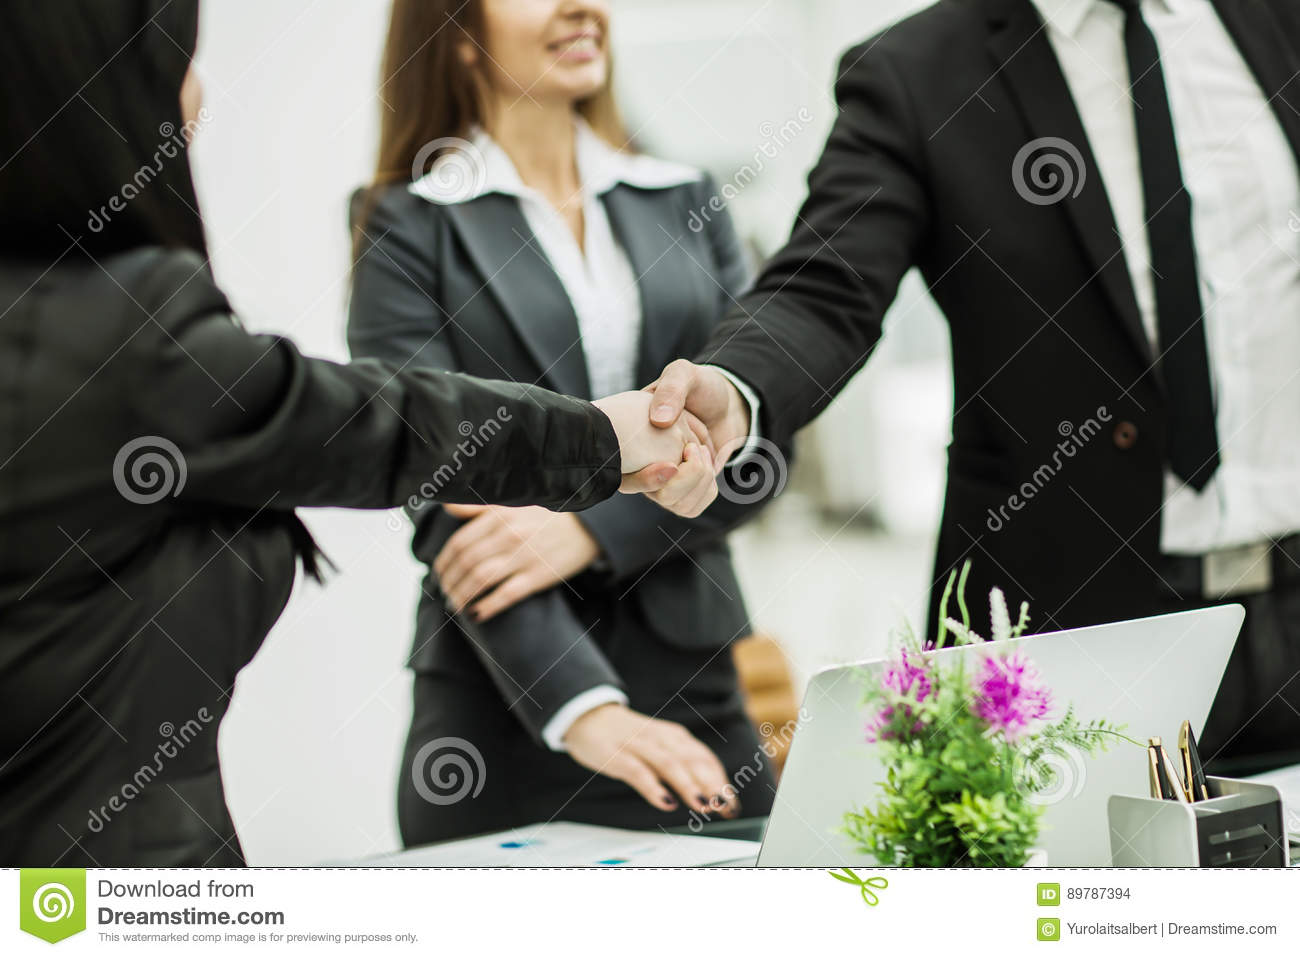 Business people handshake greeting deal at work photo free download - Business Handshake Office Successful Workplace Success Deal Gesture Friendship Clear Company People Bright Staff Finance Positive Greeting